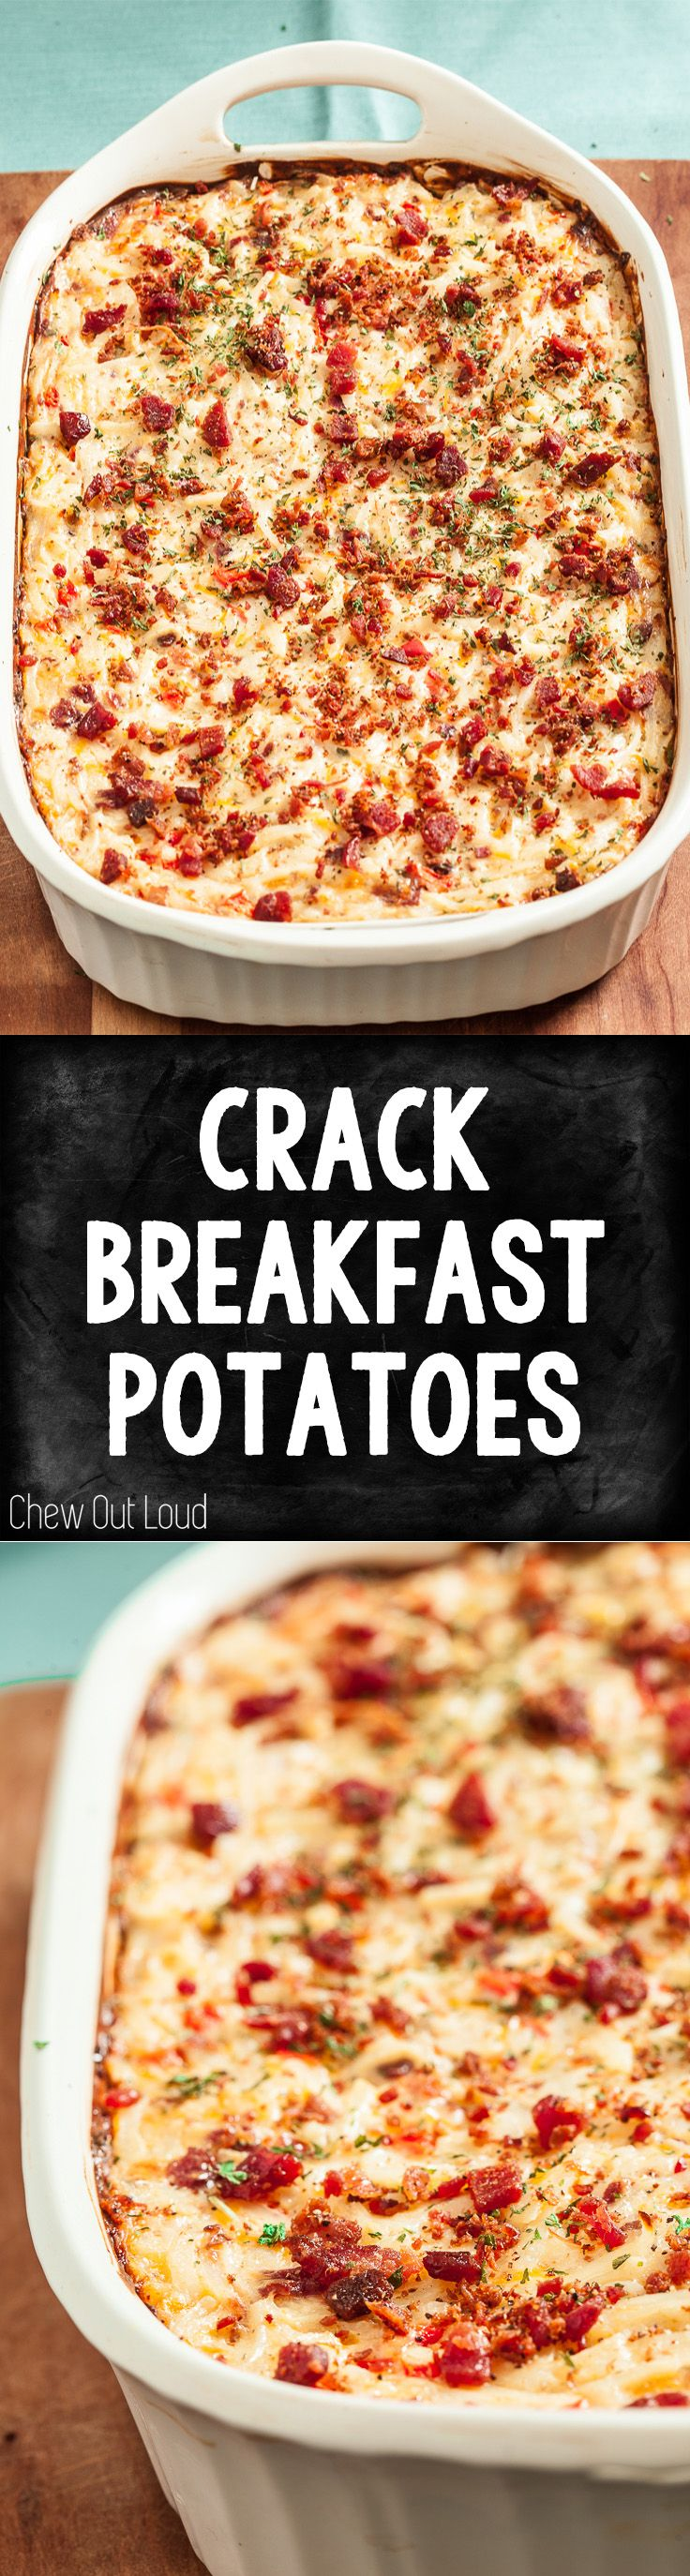 There's a reason it's called Crack Breakfast Potatoes. Brazenly addictive. Ultra comforting. Can be prepped the night before, too. #breakfast #brunch #potatoes